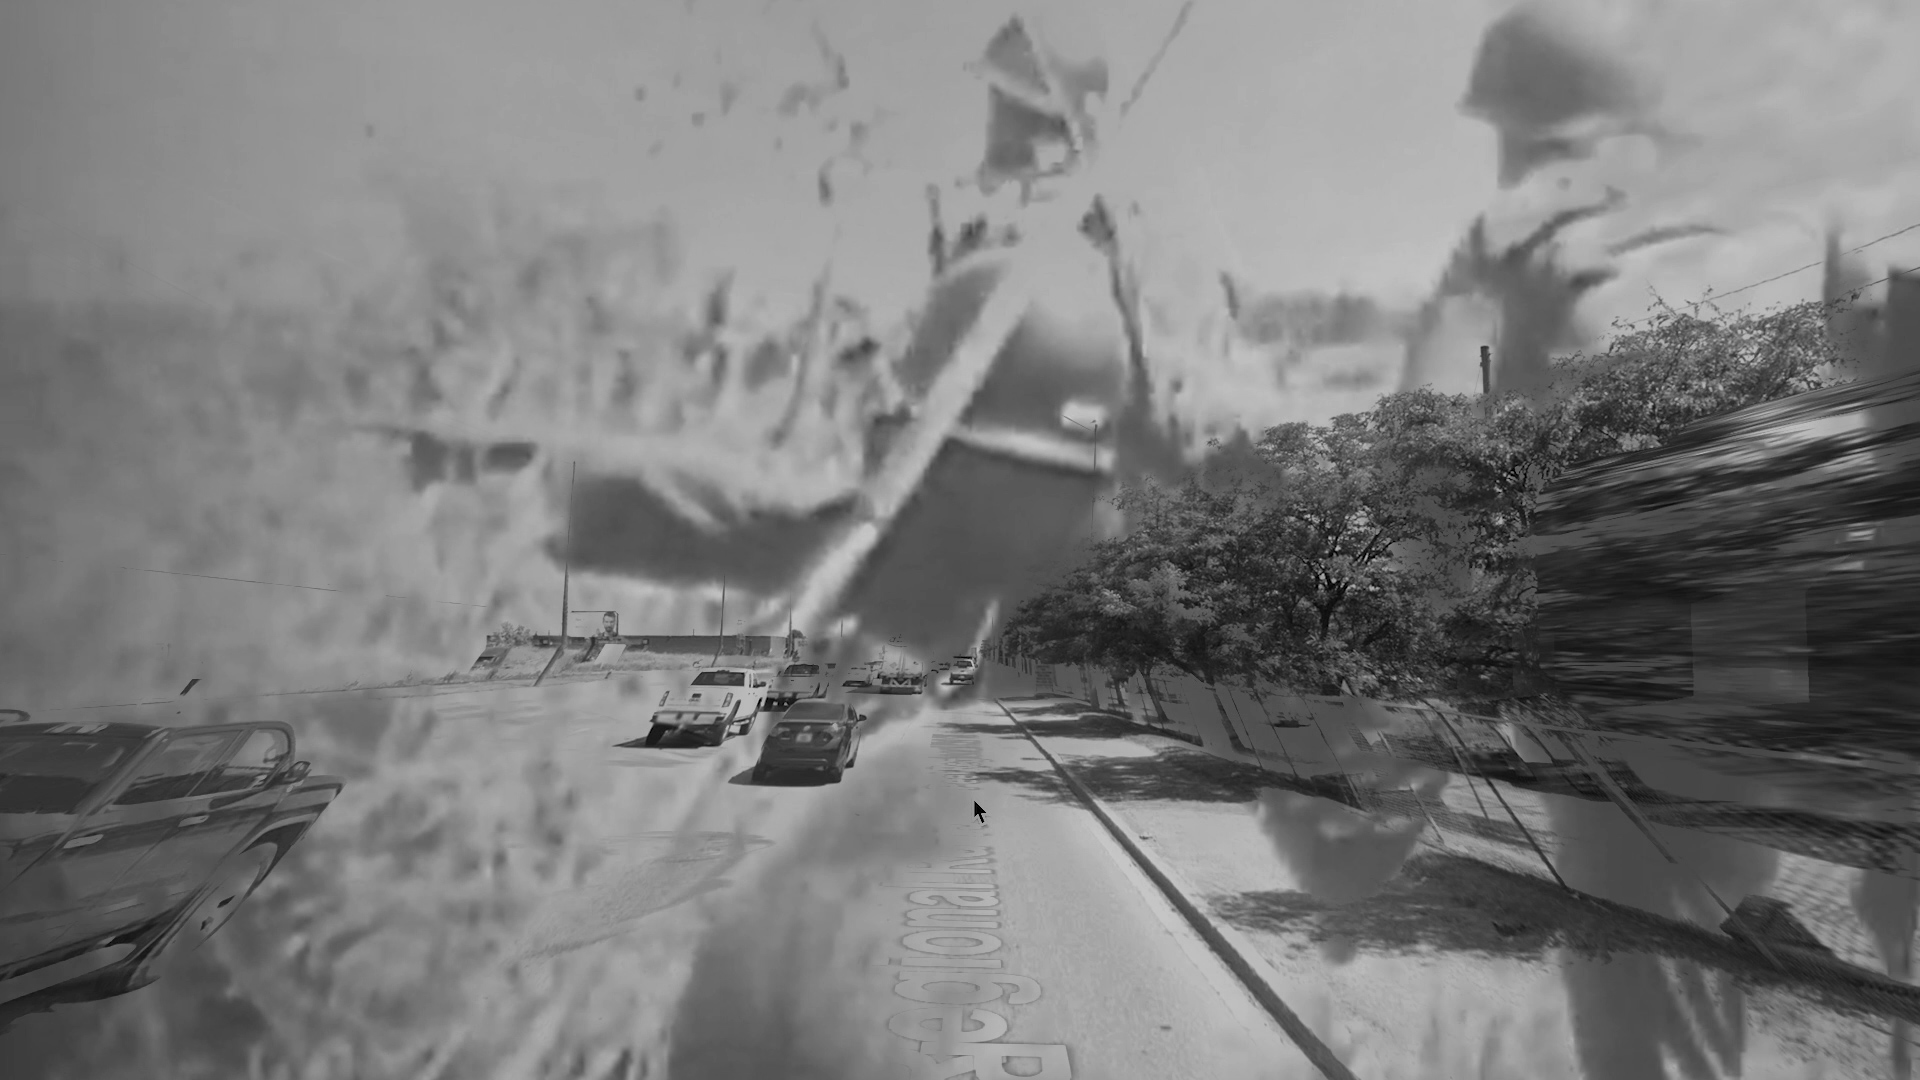 A distorted black and white image of a highway with cars; overlayed by images of men with helmets.